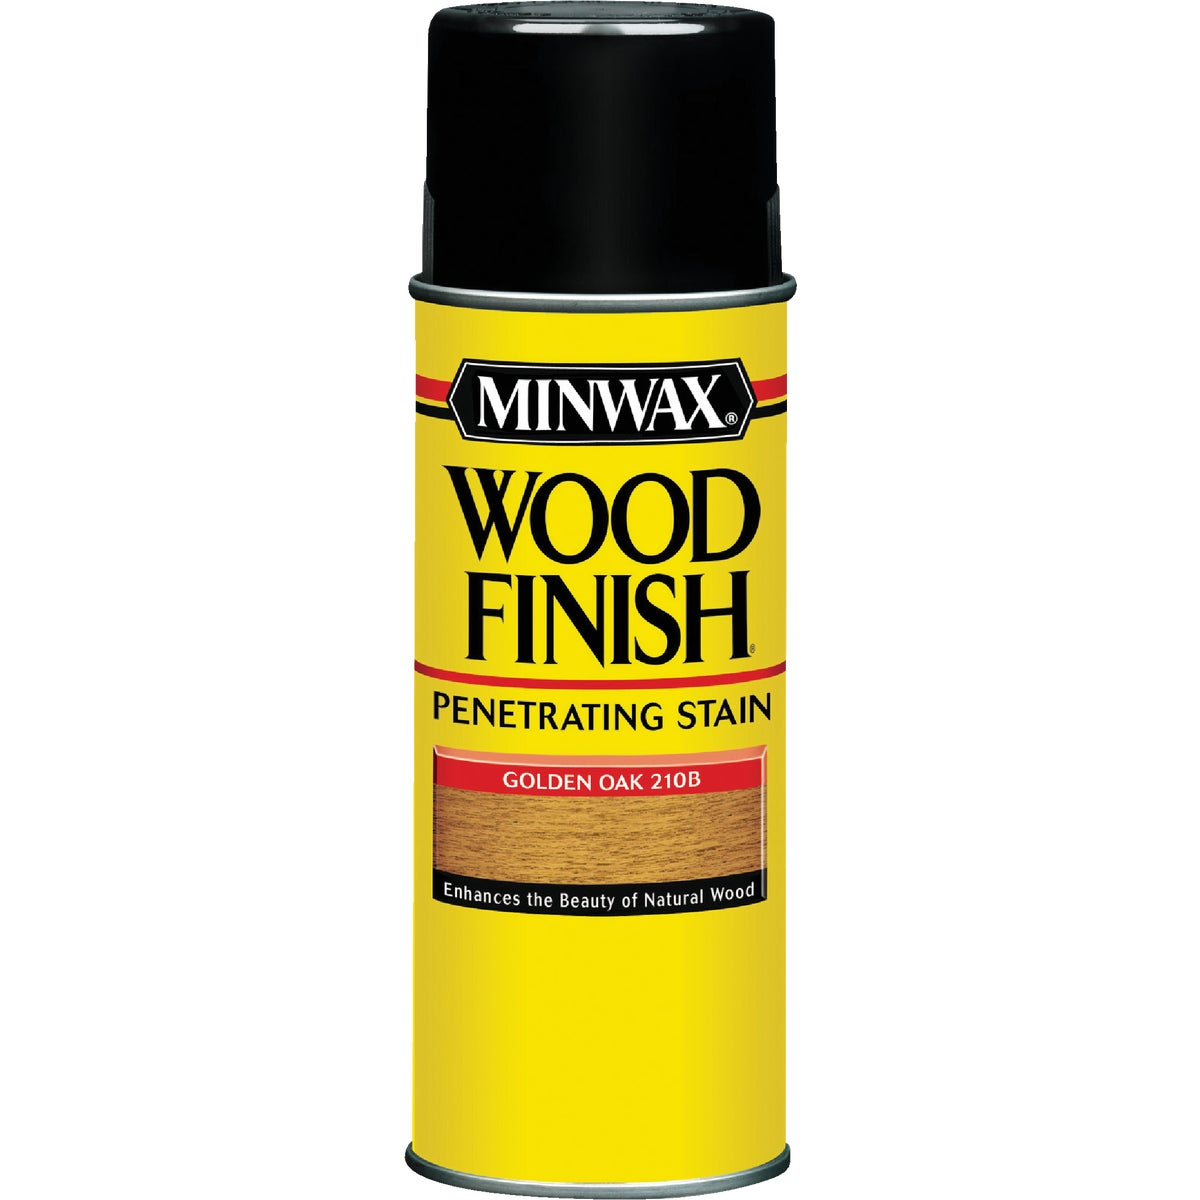 GOLDEN OAK SPRAY STAIN - 32102 by Minwax Company